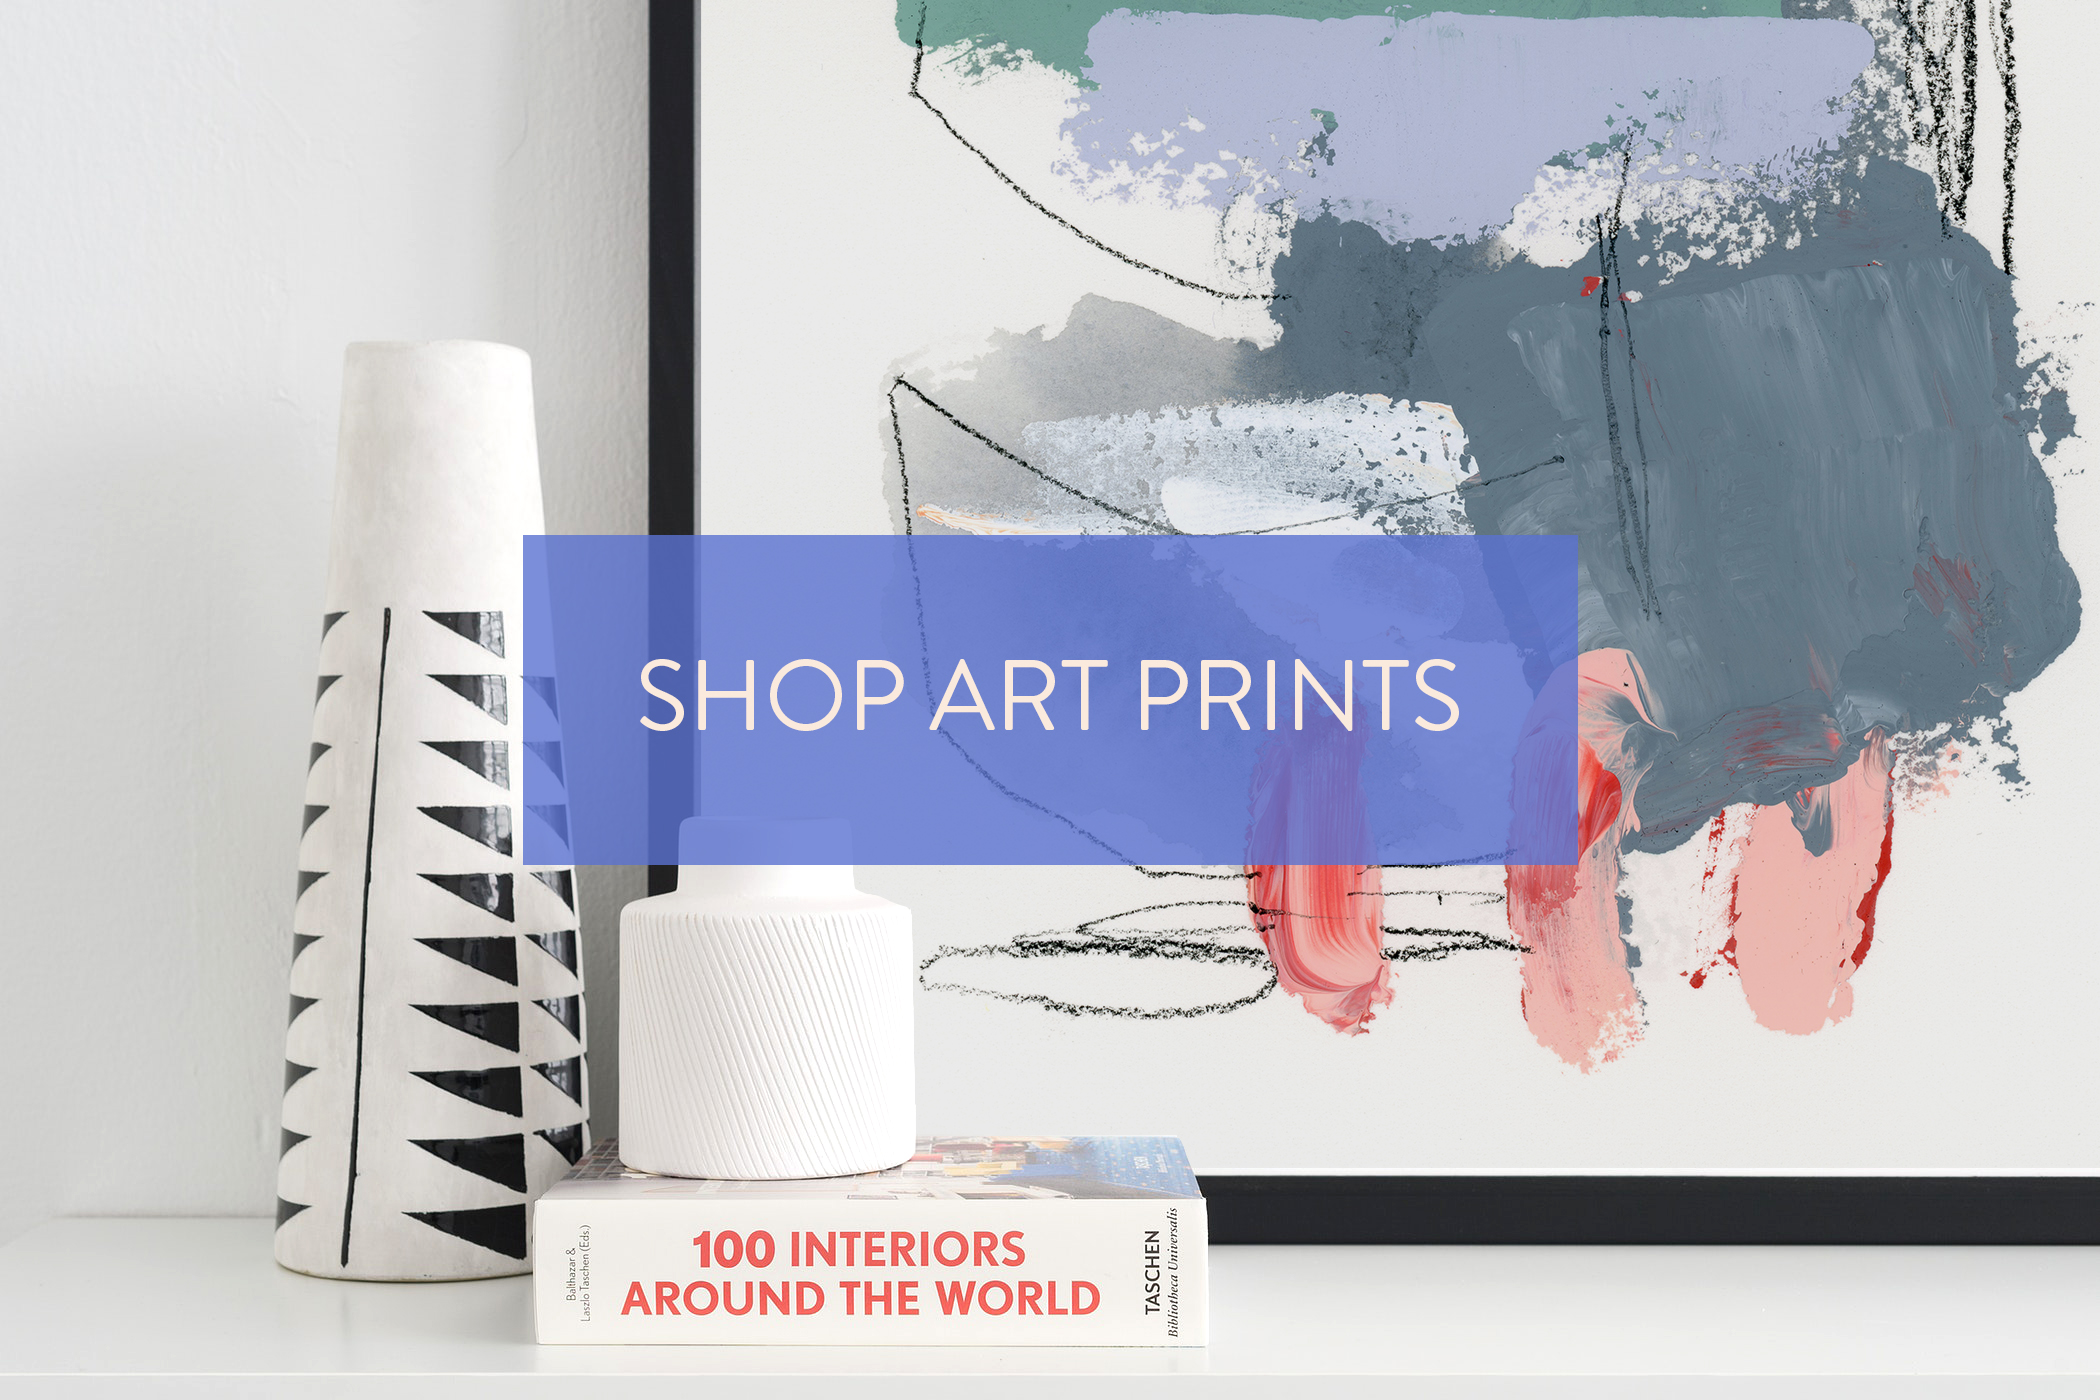 shop artwork prints by artist lauren dusing